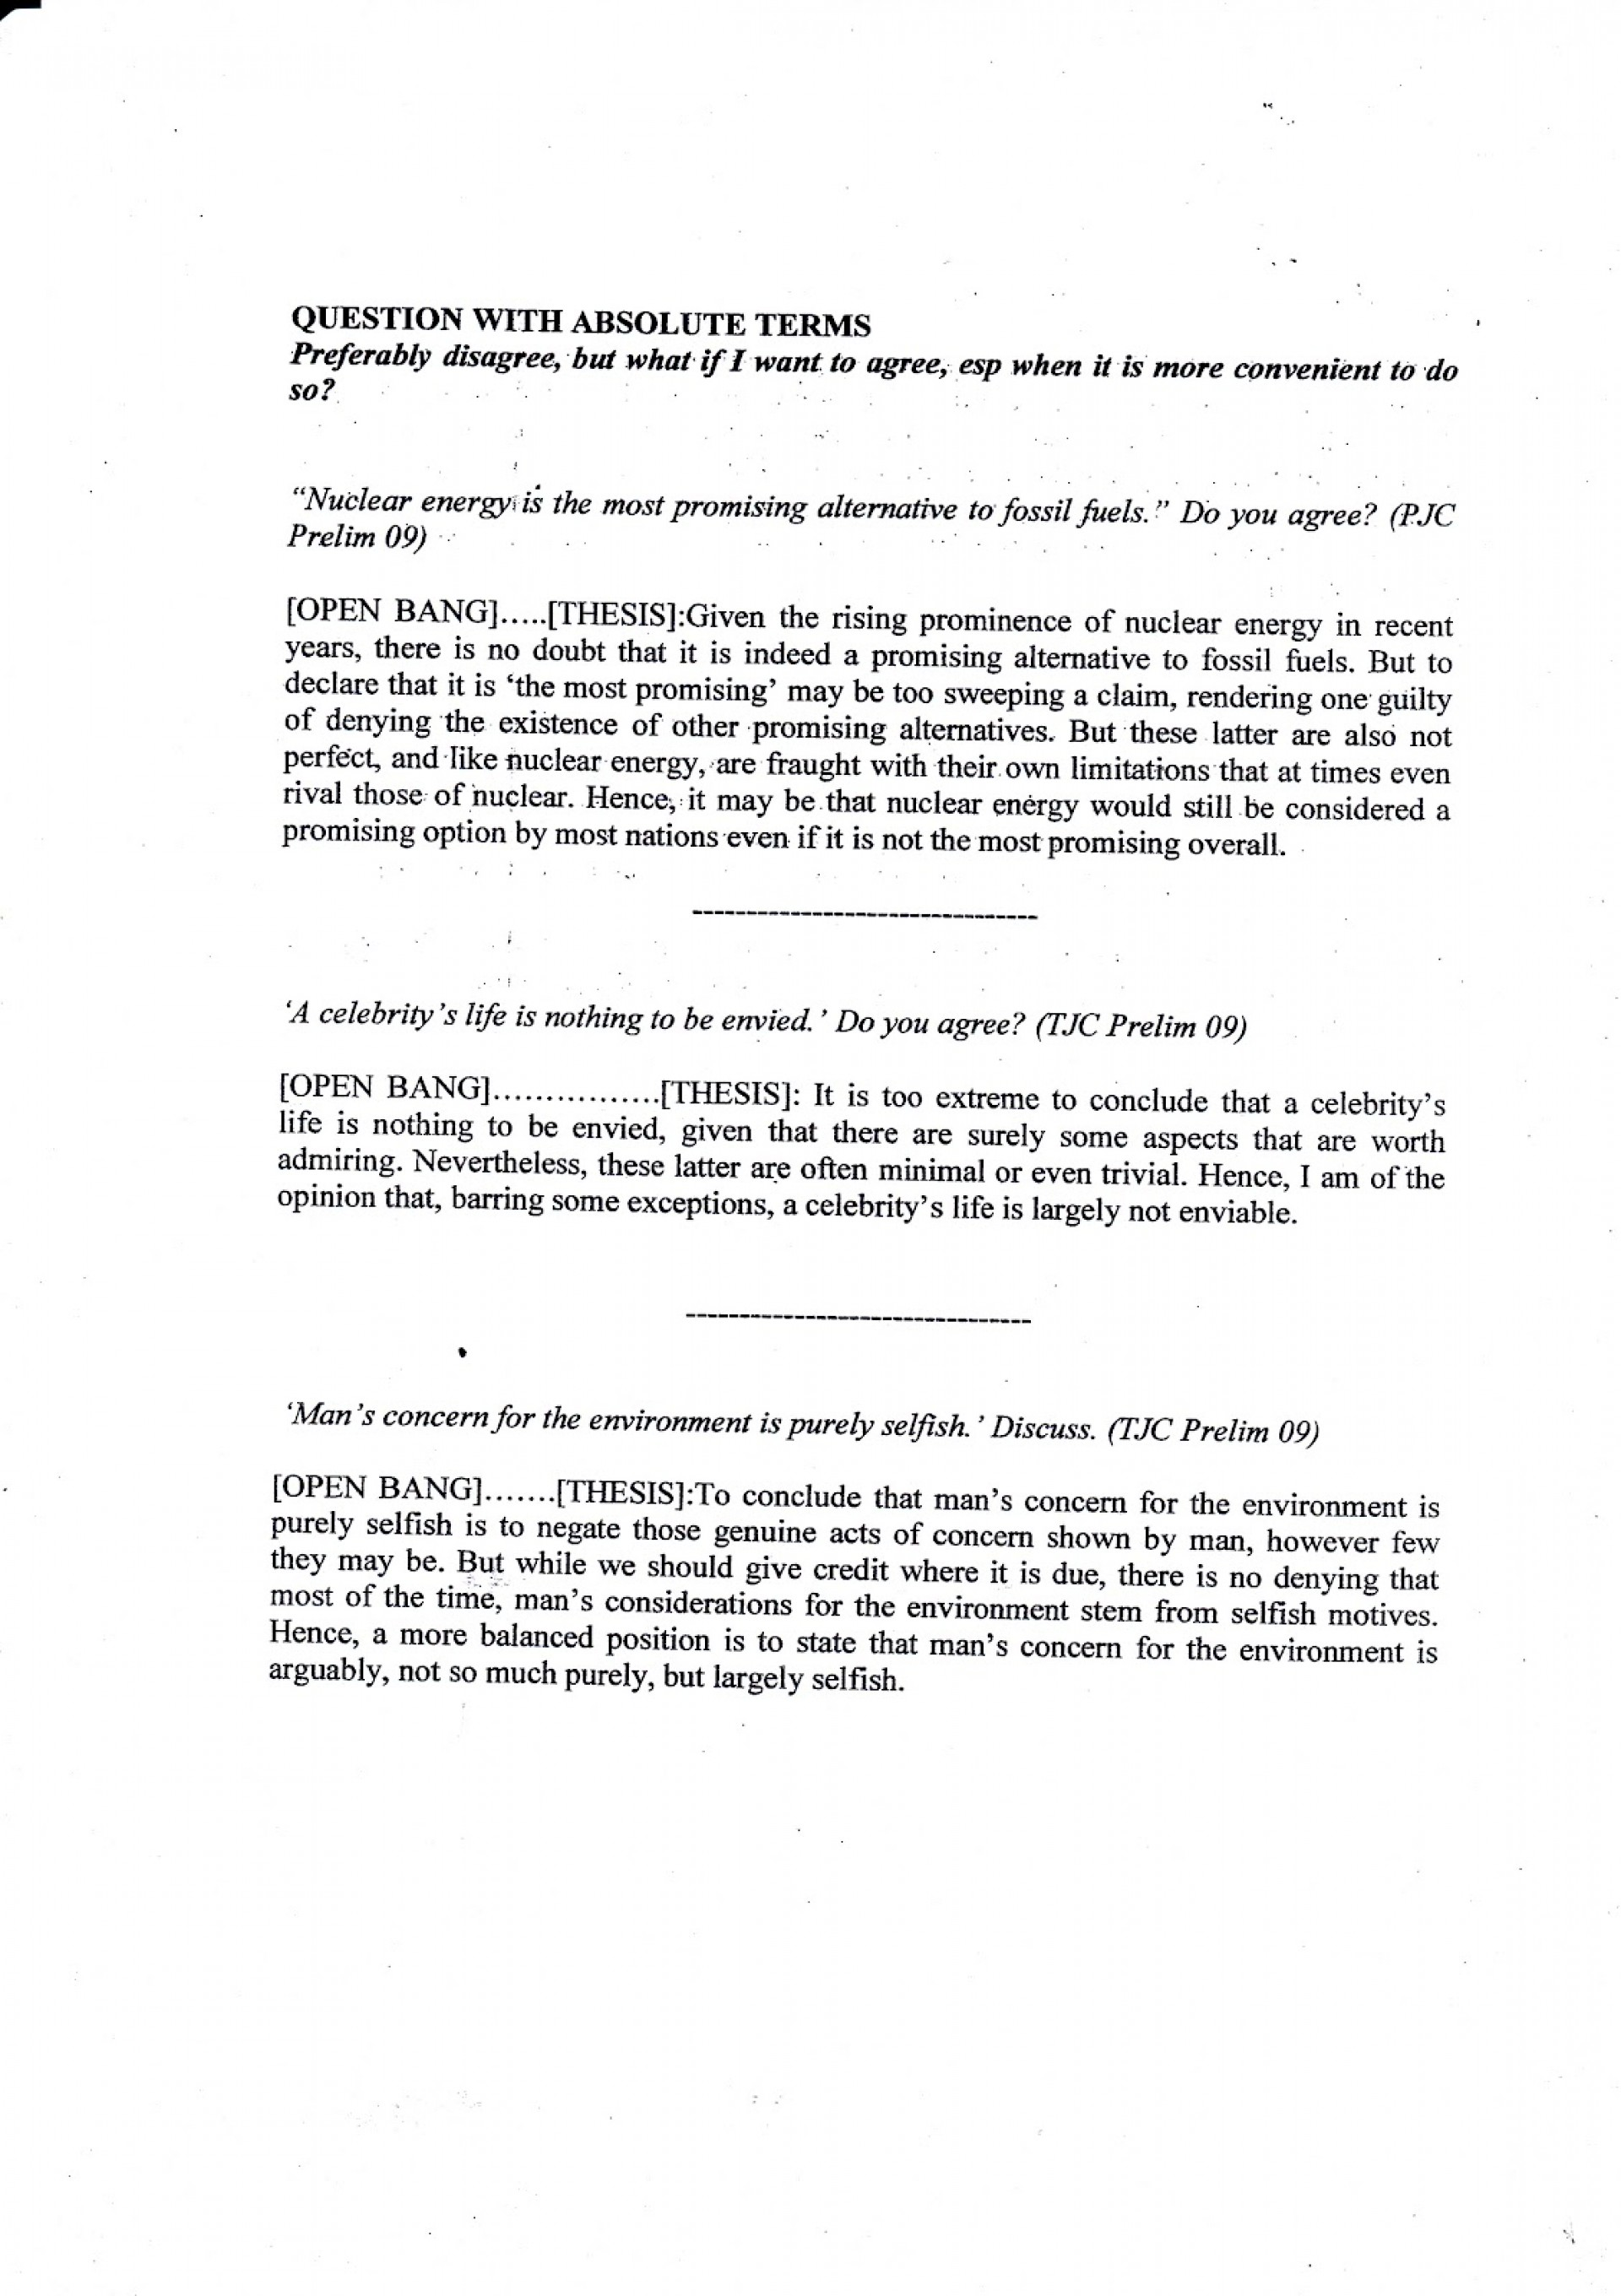 005 Nuclear Chemistry Essay Img 0001 Awesome Advantages And Disadvantages 1920